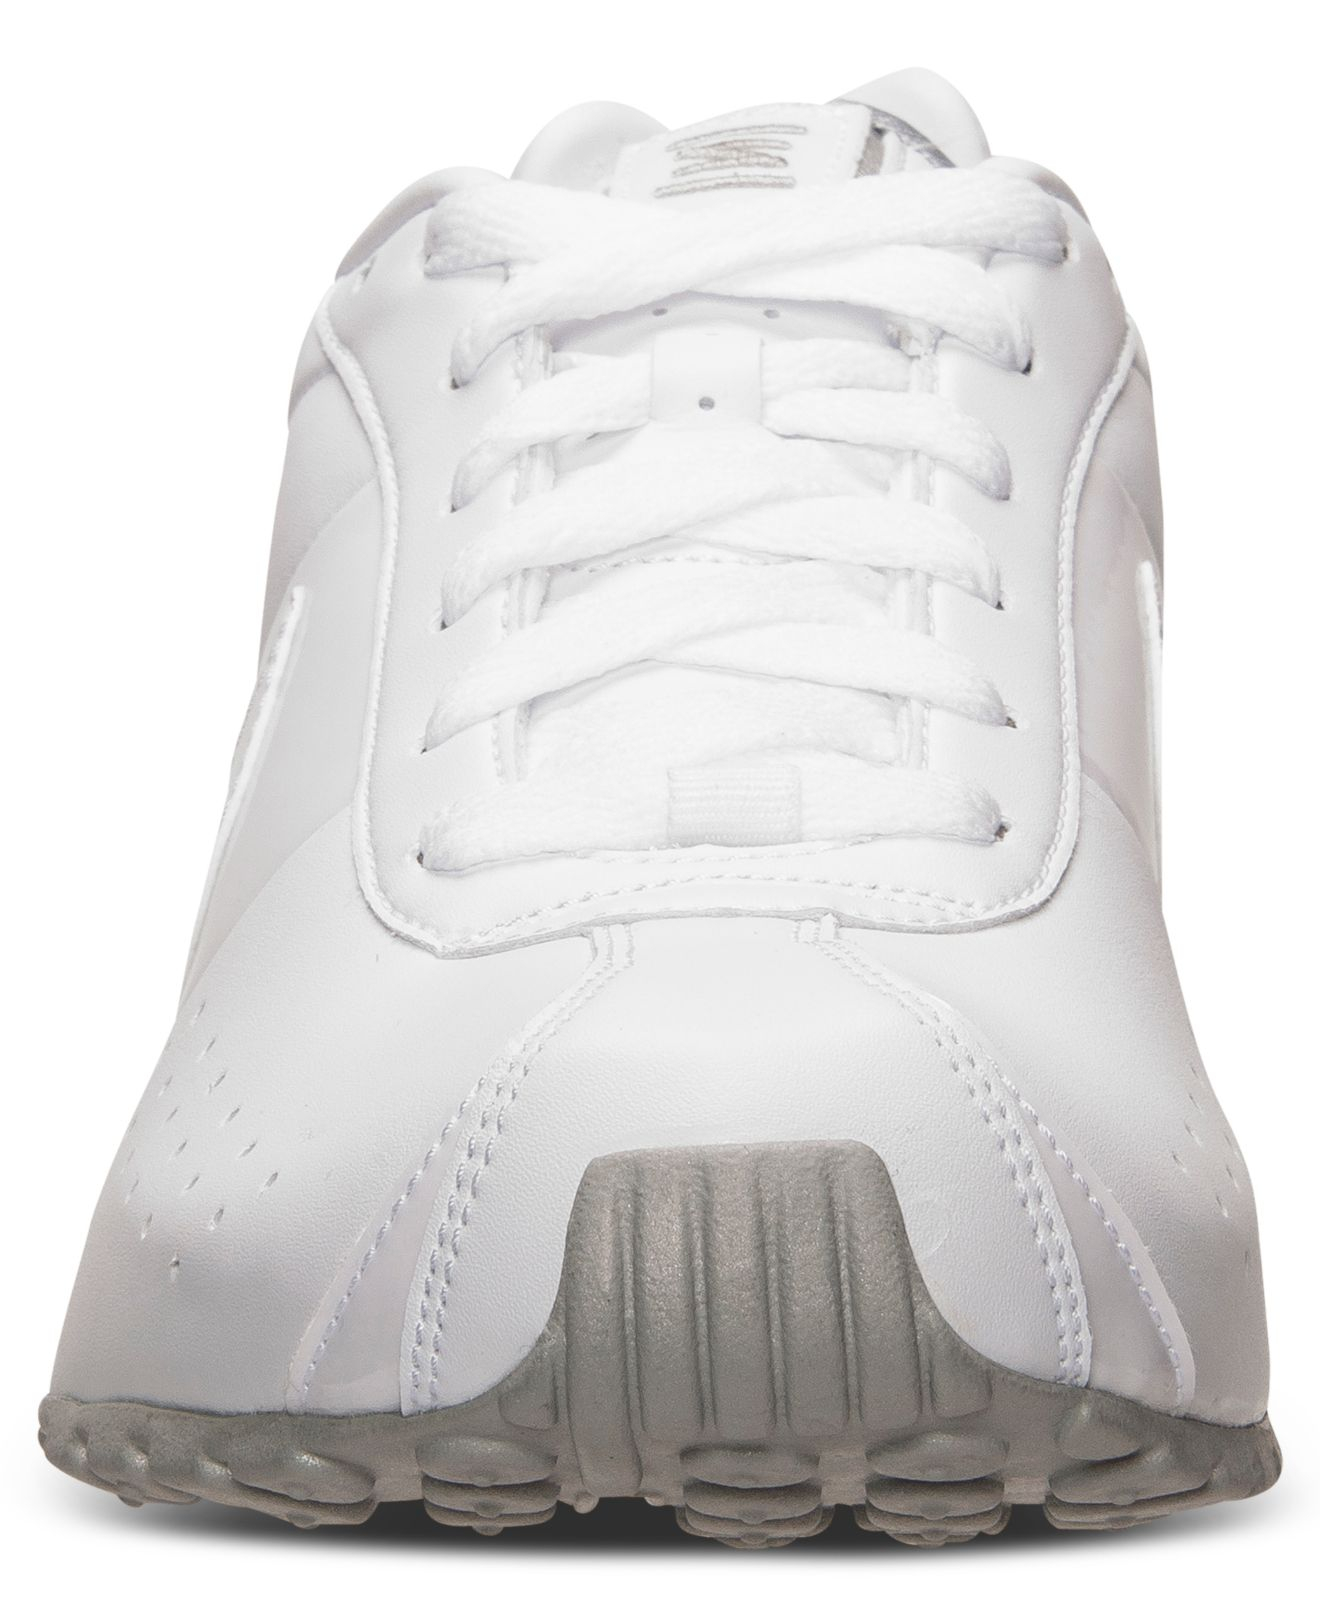 pretty nice 747ee d7184 Nike Men S Shox Classic Ii Si Running Sneakers From Finish Line in ...